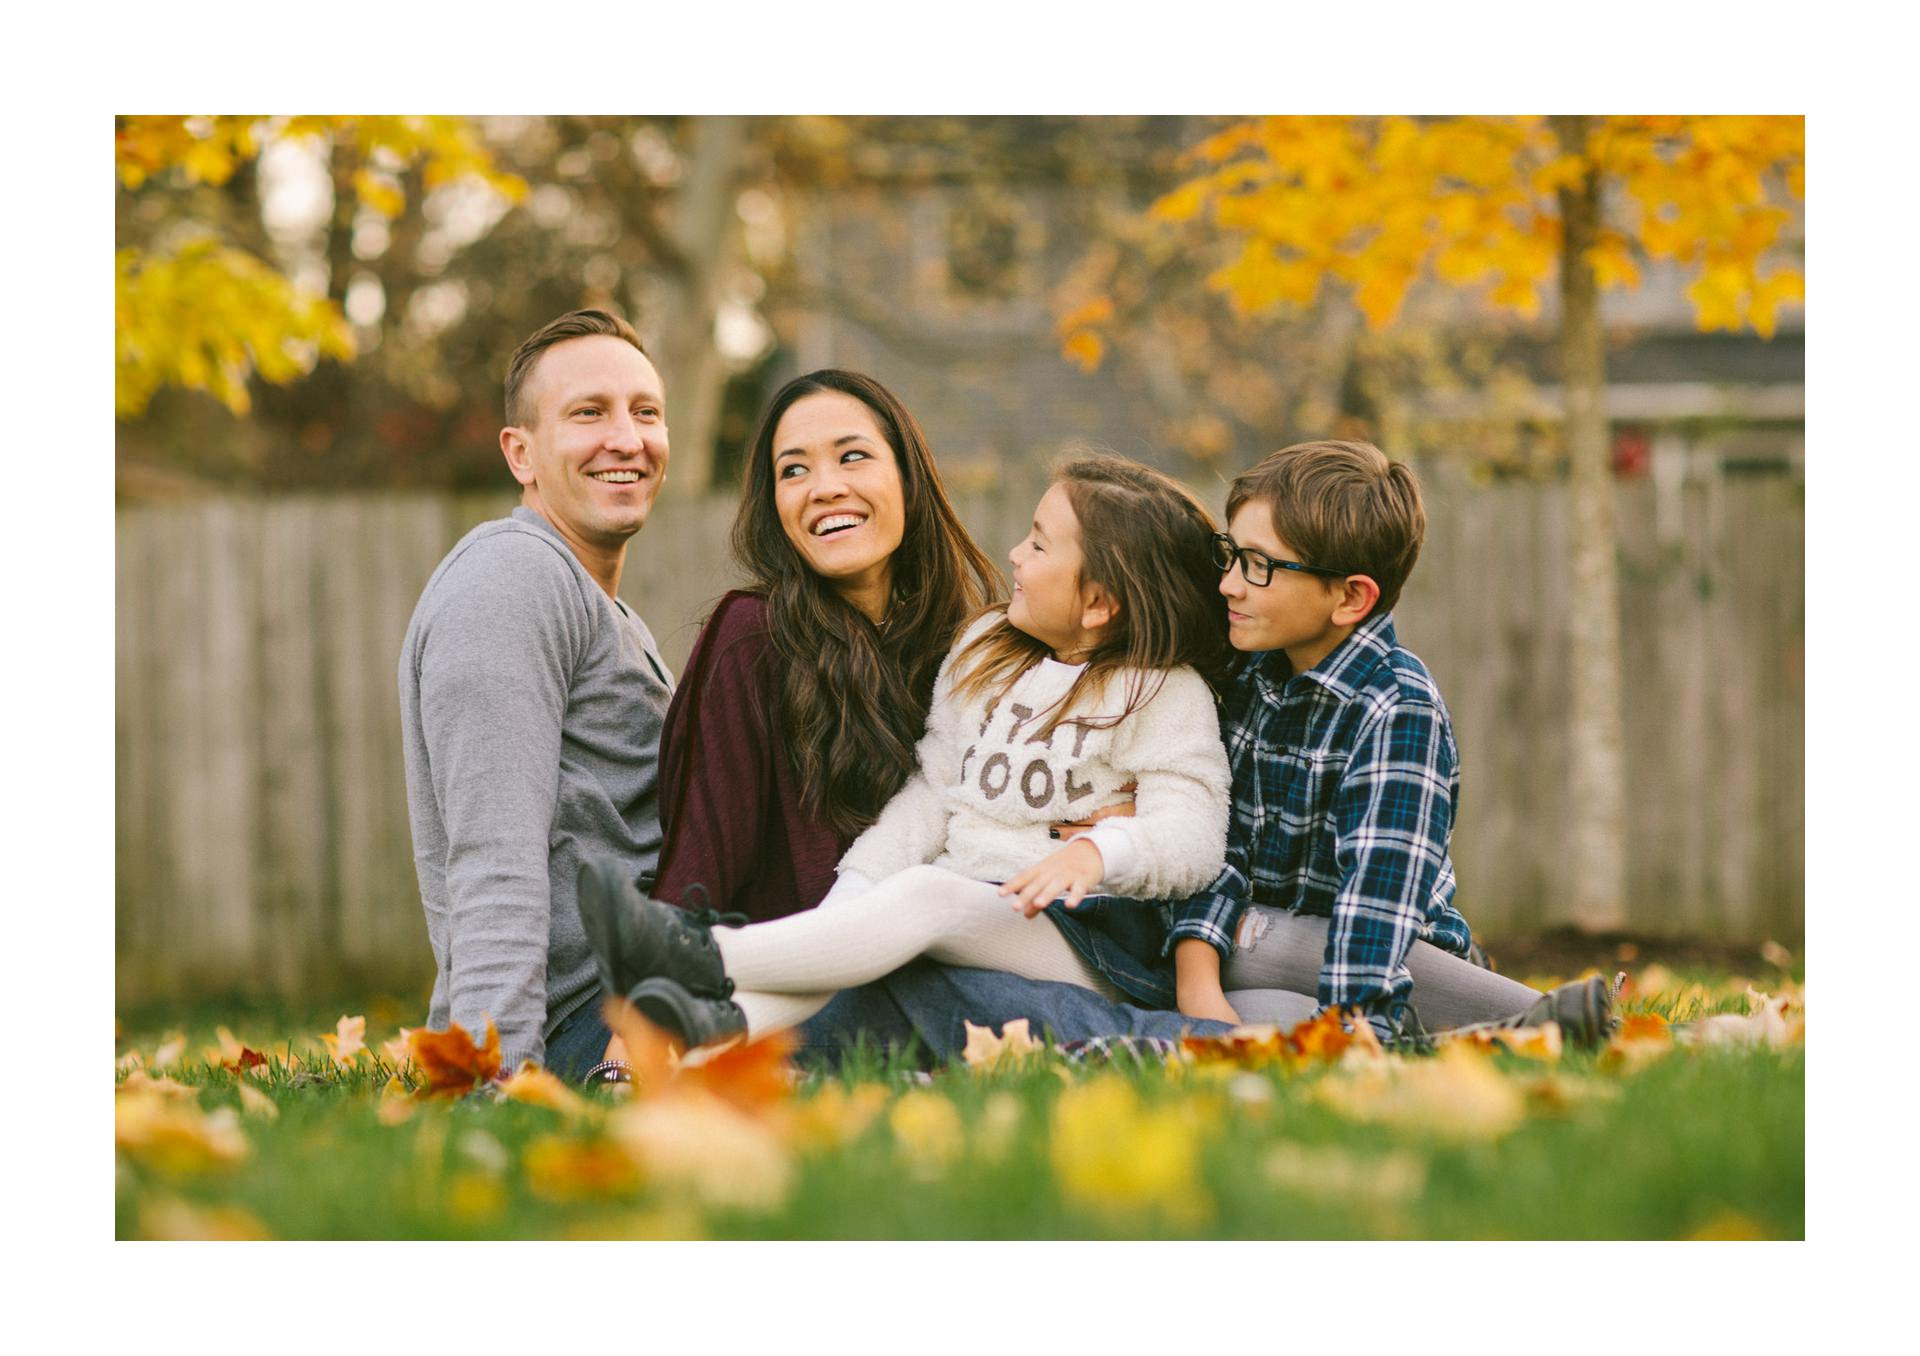 Westlake Ohio Family Portrait Photographer The Roths 24.jpg